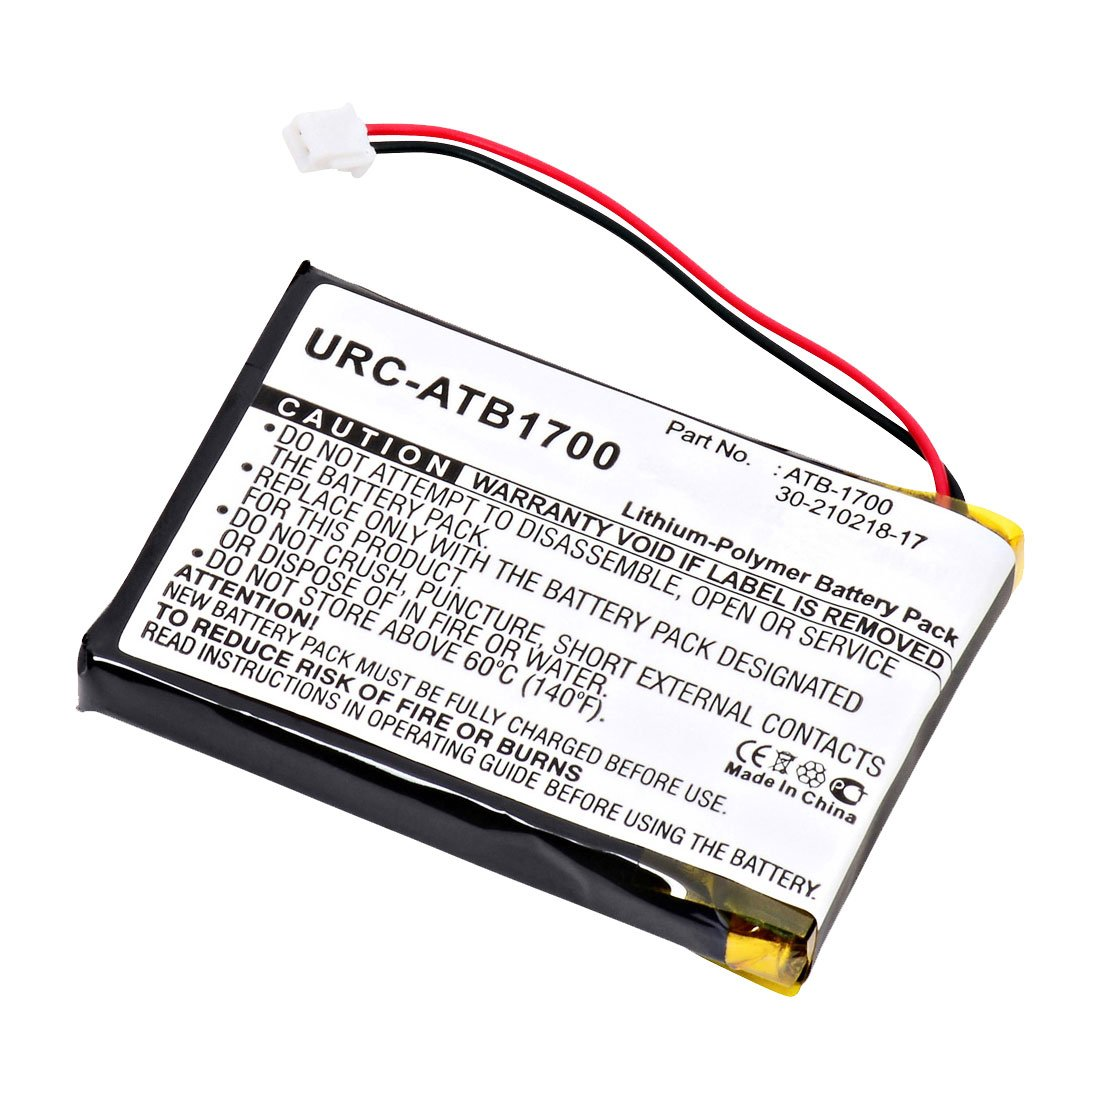 Replacement Rti Atb Battery Batterymart